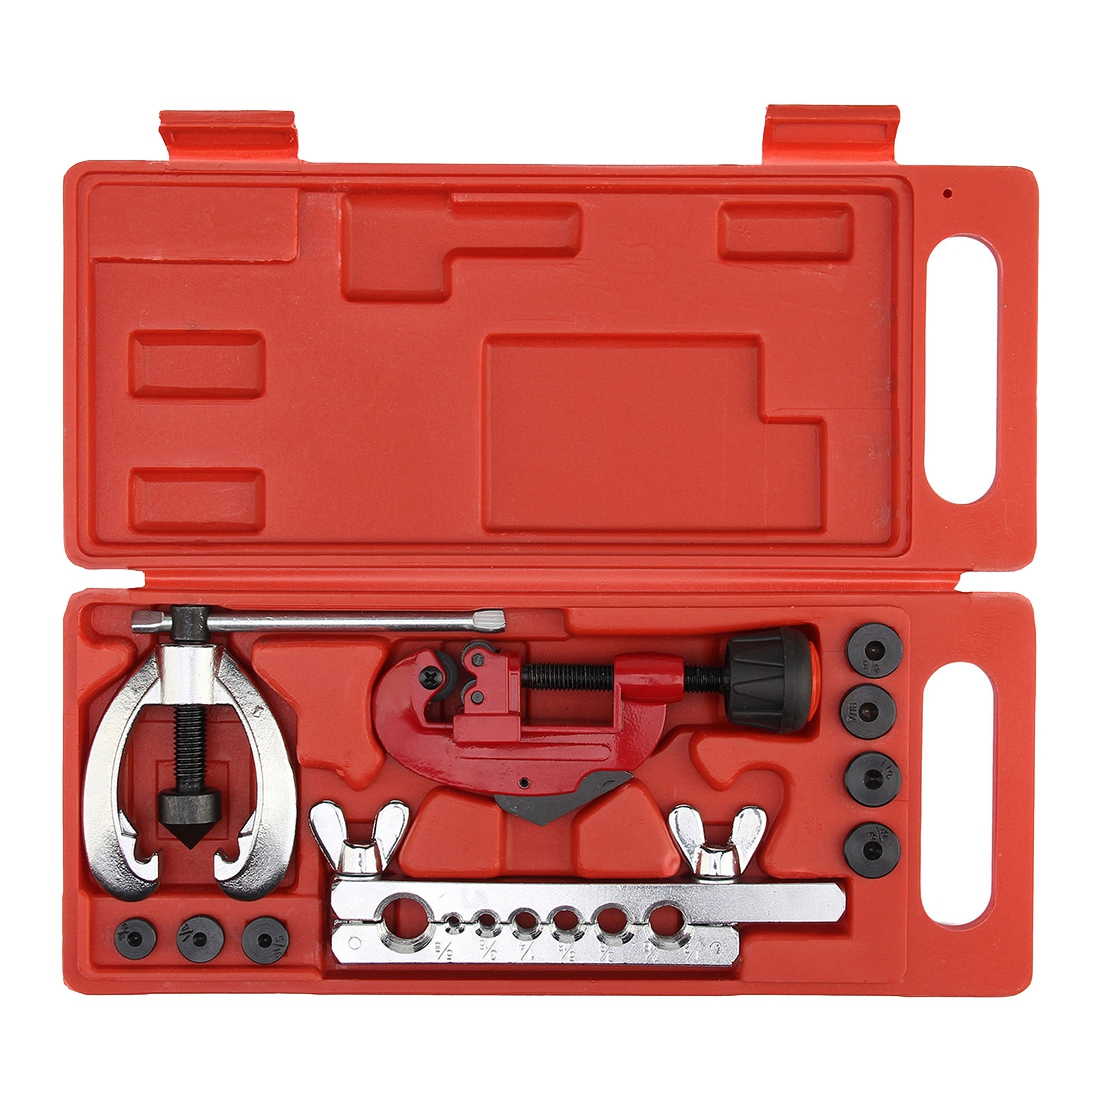 Copper Brake Fuel Pipe Repair Double Flaring Dies Tool Set Clamp Kit Tube Cutter flaring tool kit pvc pipe cutter